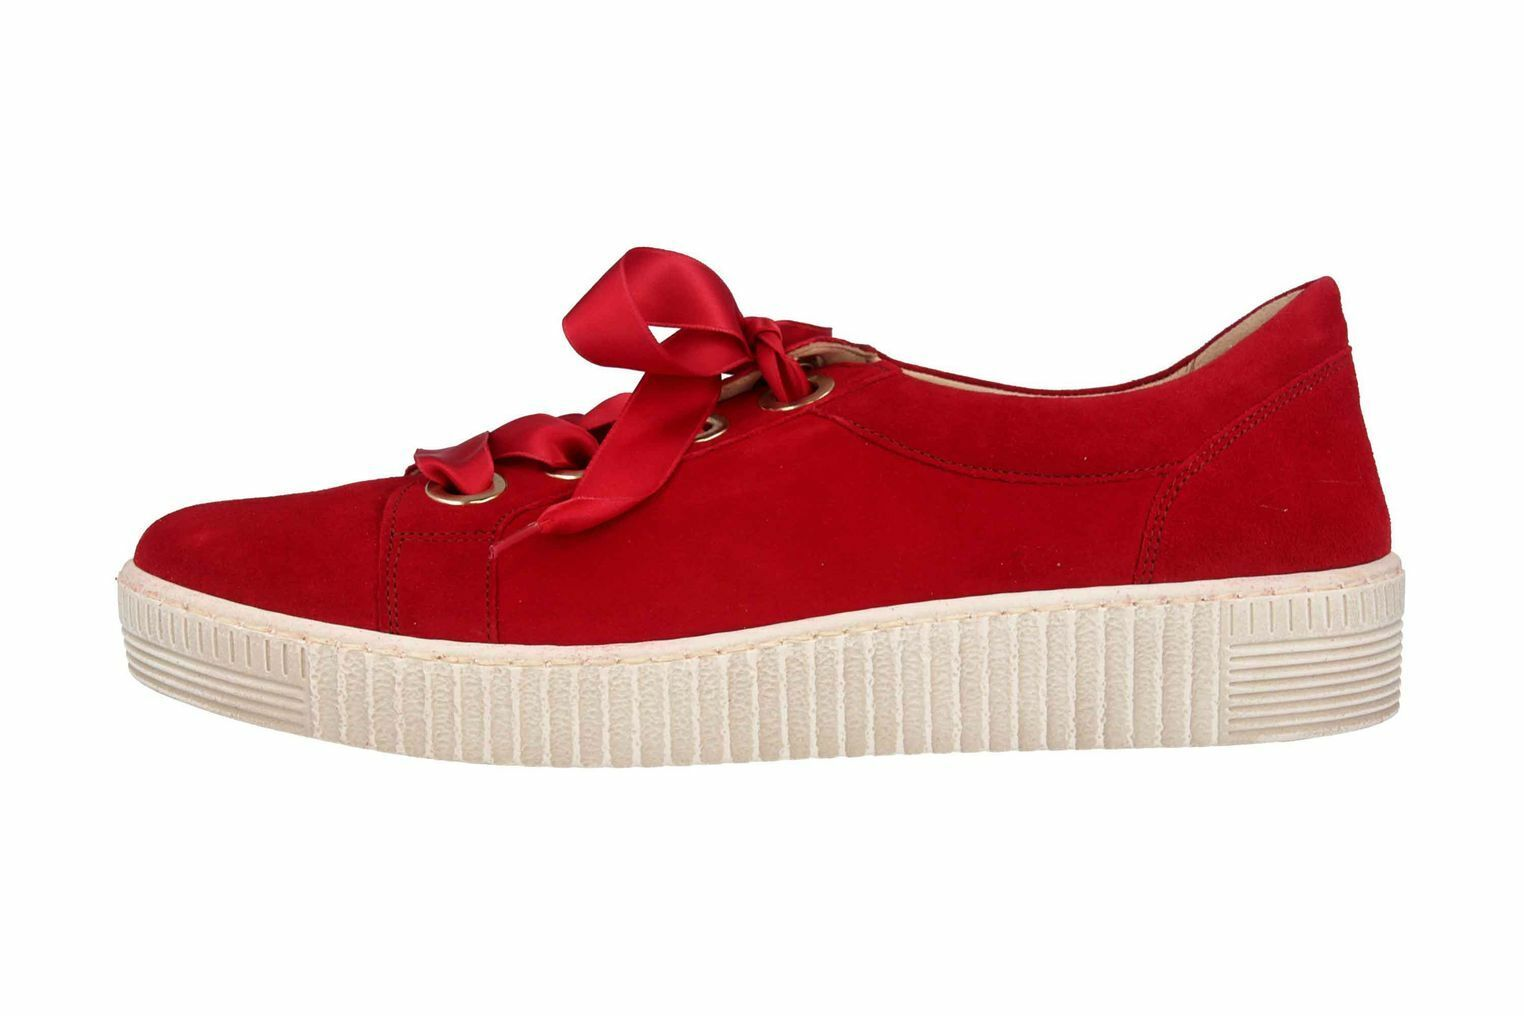 Gabor Jollys Trainer in Plus Sizes Red 23.330.10 wide Ladies shoes